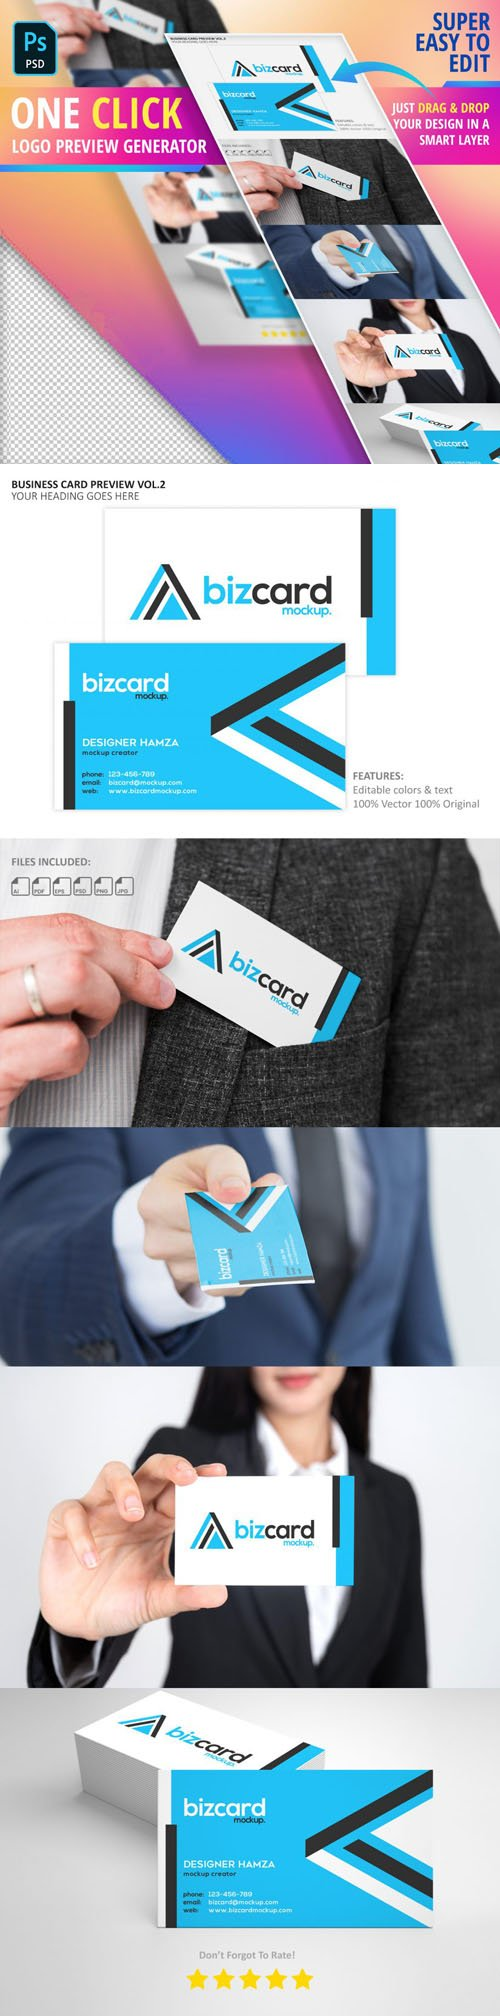 Business Card PSD Mockup - Logo Preview Generator